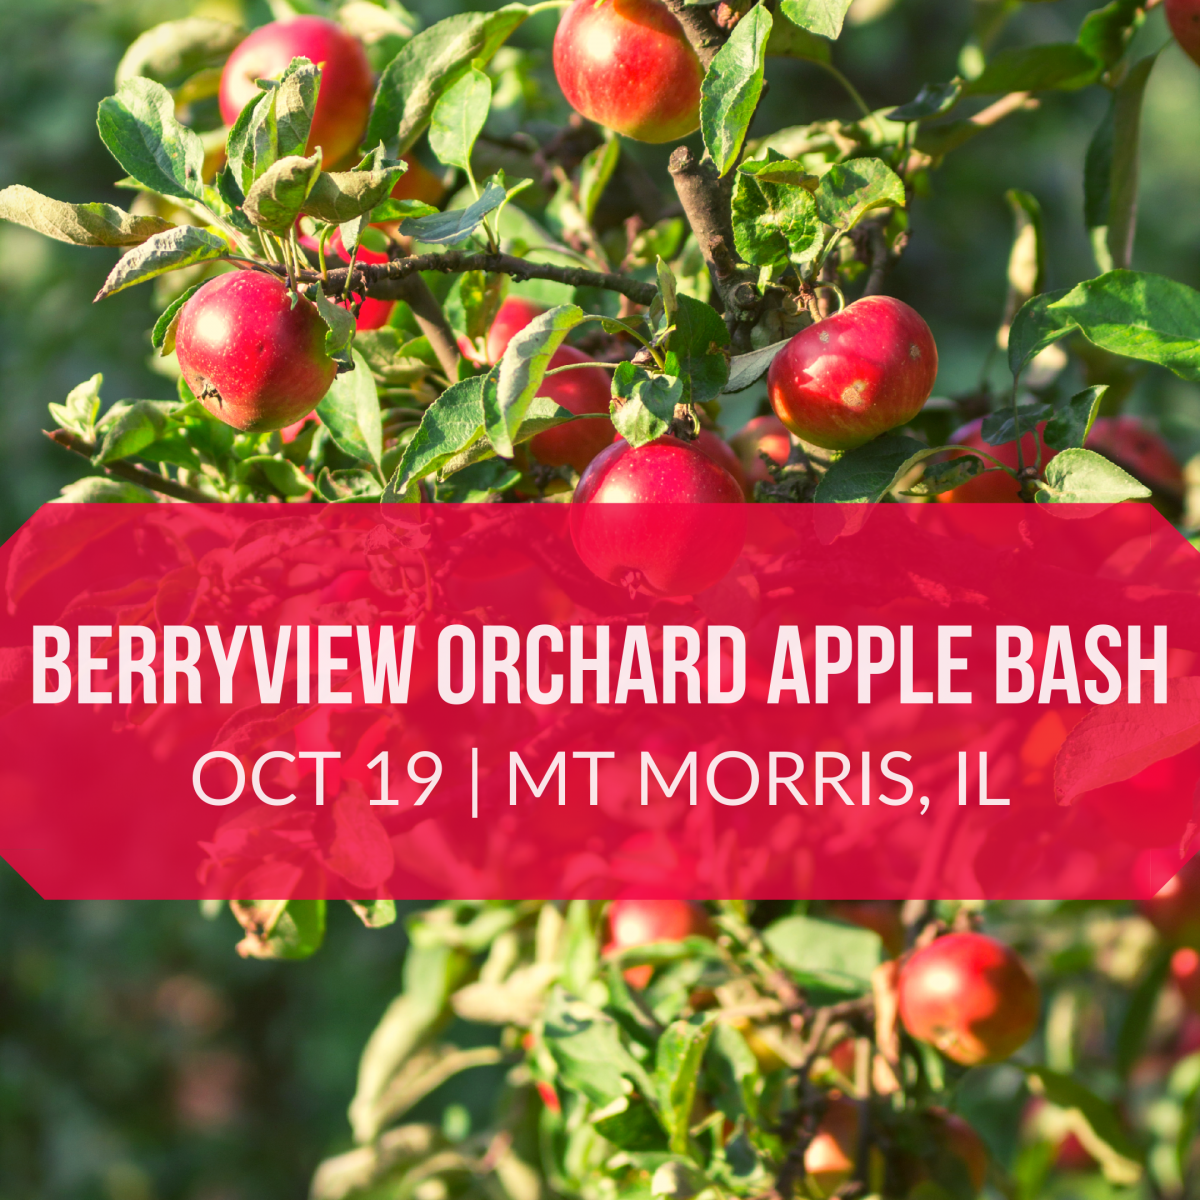 Berryview Orchard Apple Bash